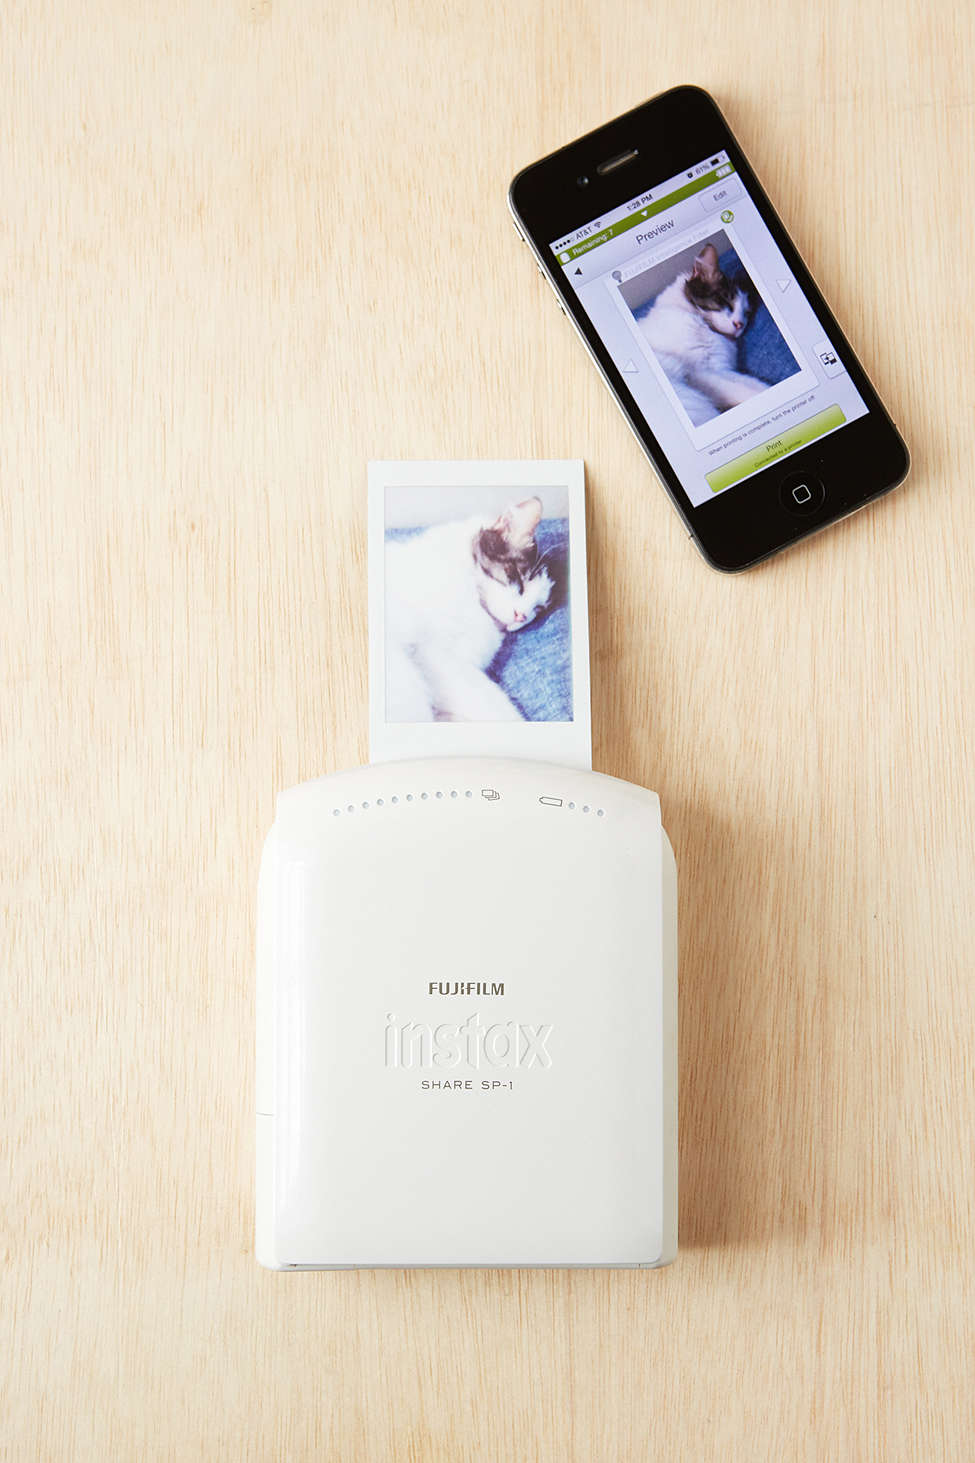 A Fujifilm Instax Instant Smartphone Printer printing cat images is one of various creative Valentine's Day gifts for her or him.